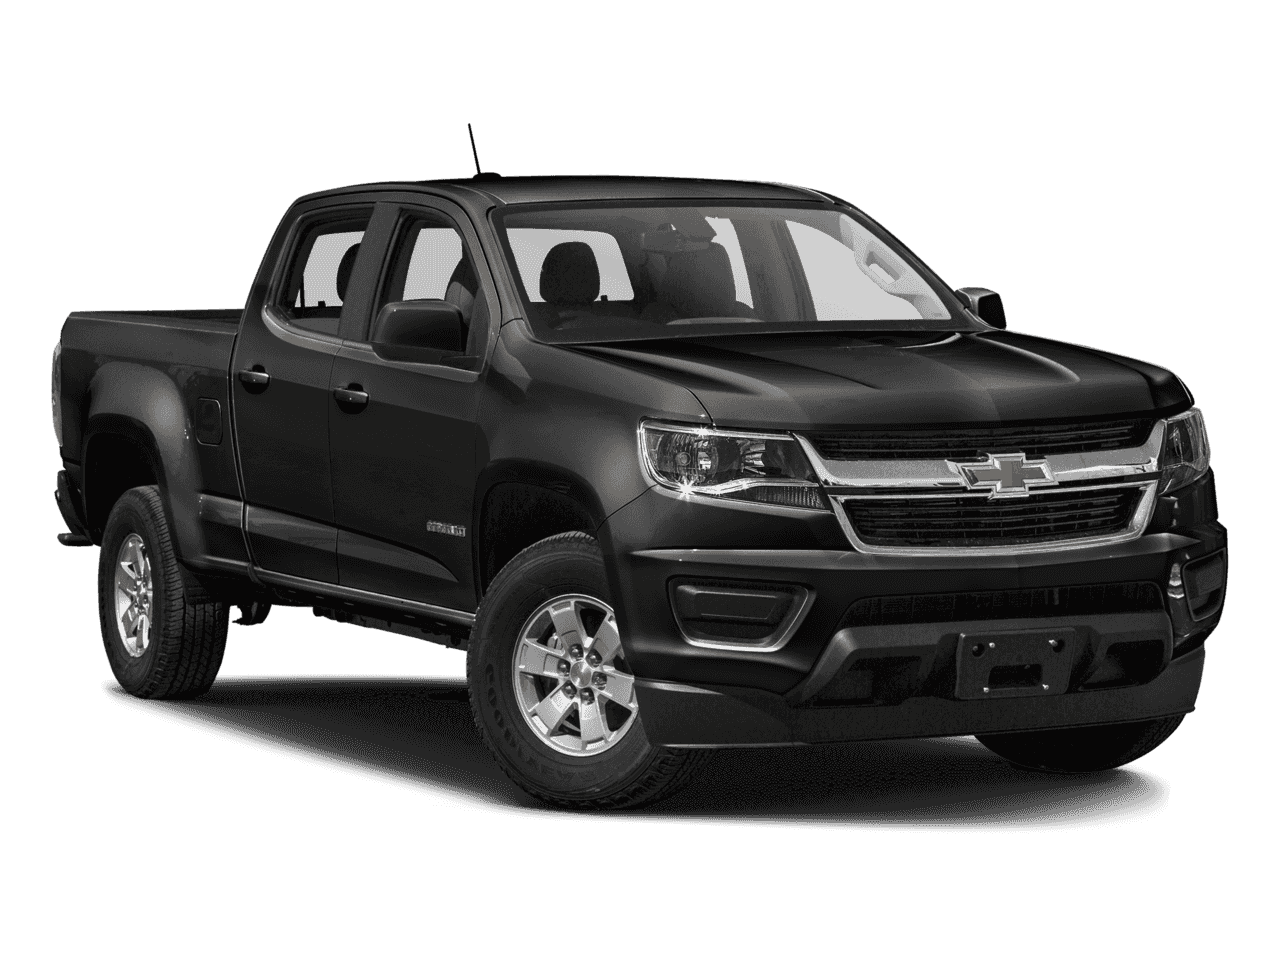 New Chevrolet Colorado 2WD Work Truck